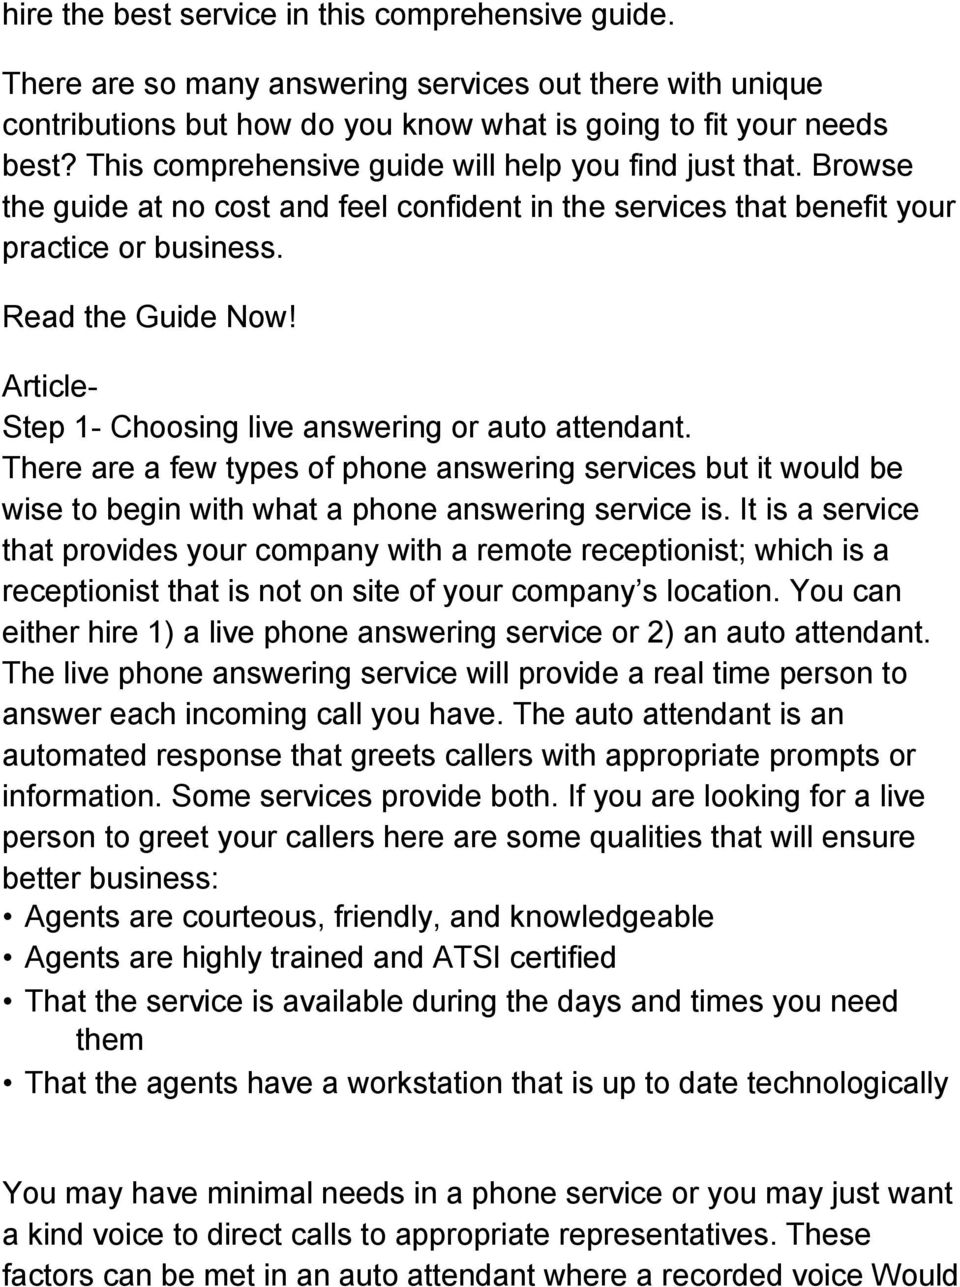 Article- Step 1- Choosing live answering or auto attendant. There are a few types of phone answering services but it would be wise to begin with what a phone answering service is.